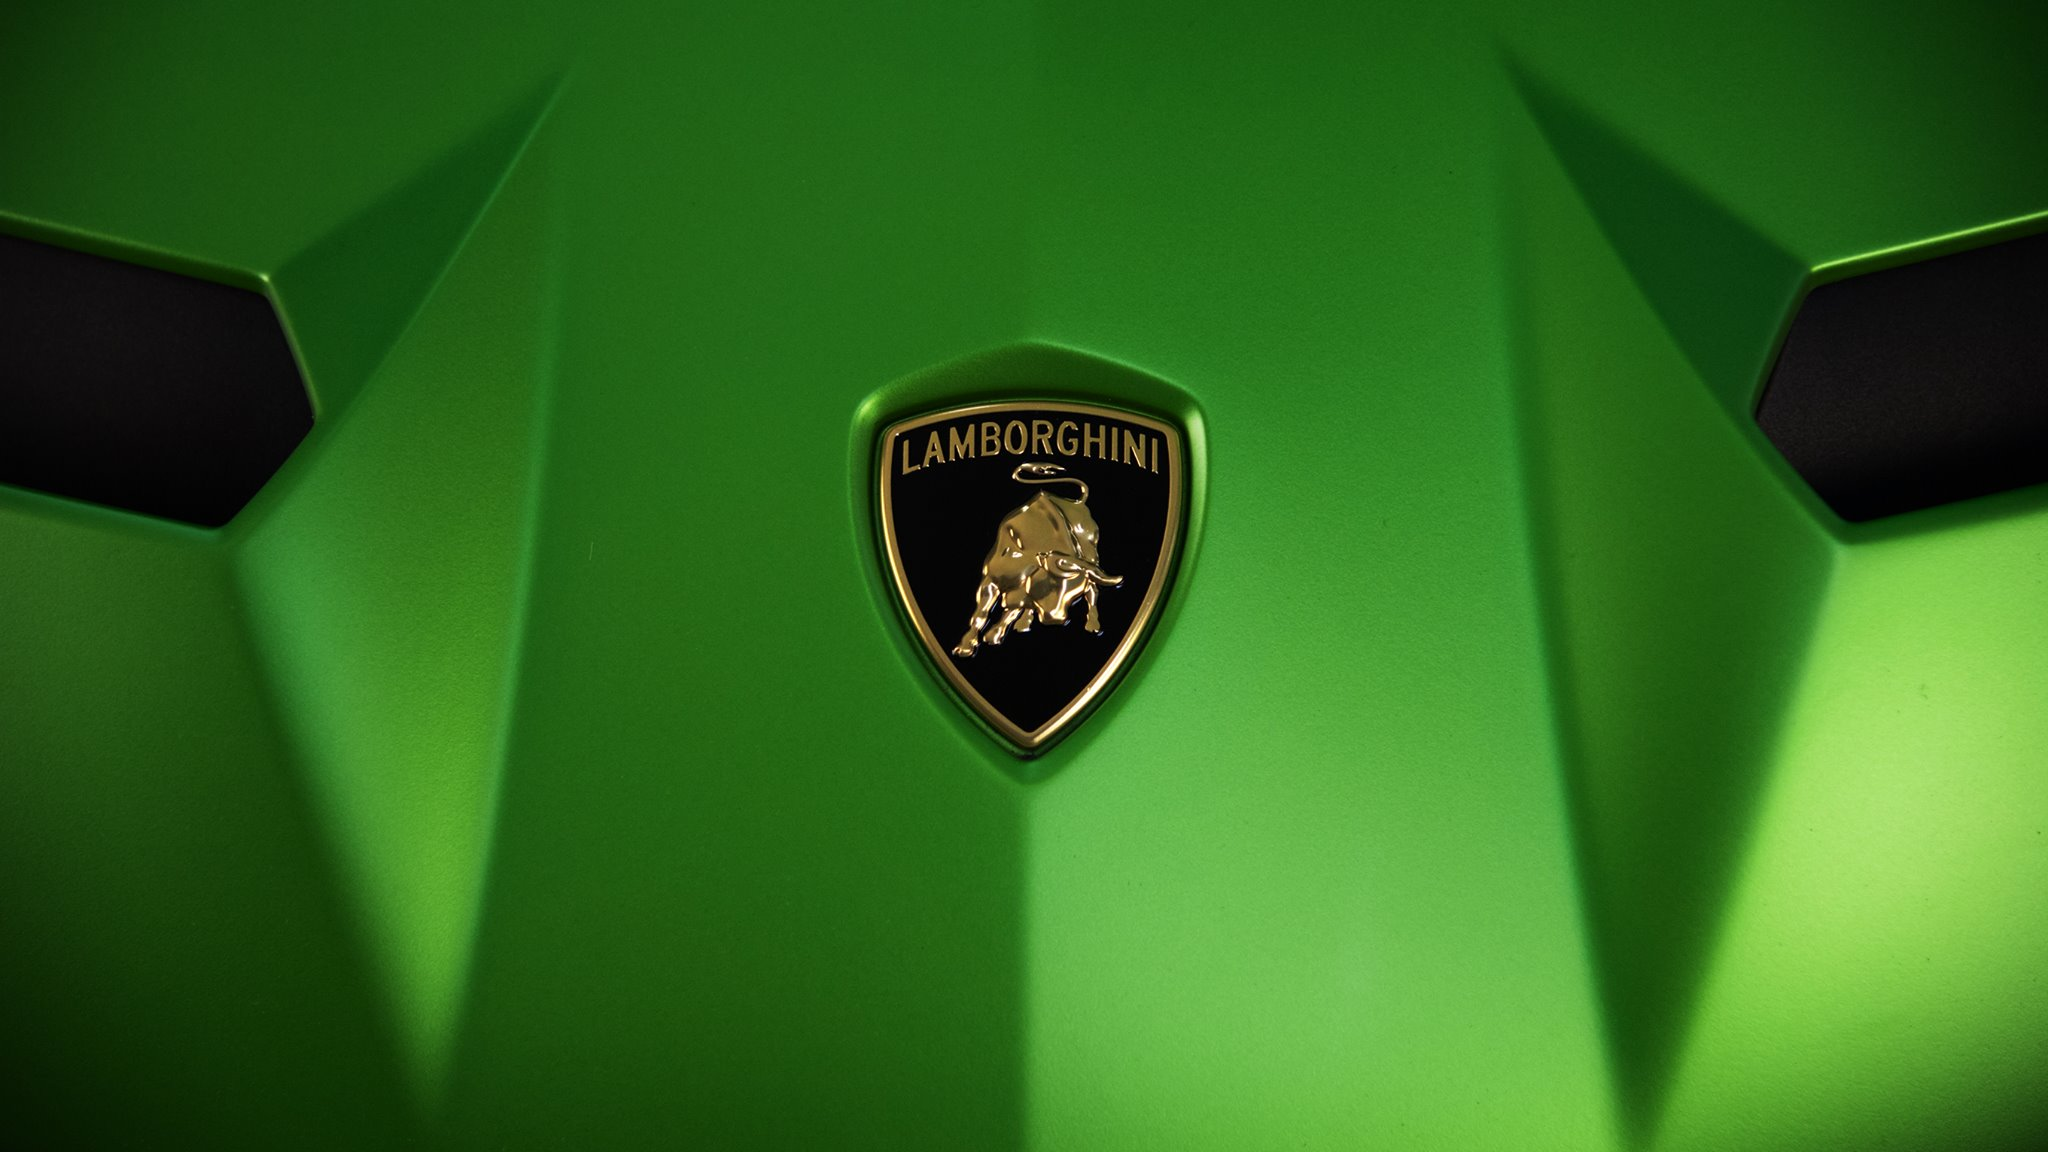 Lamborghini Aventador SV J Teased in New Photo